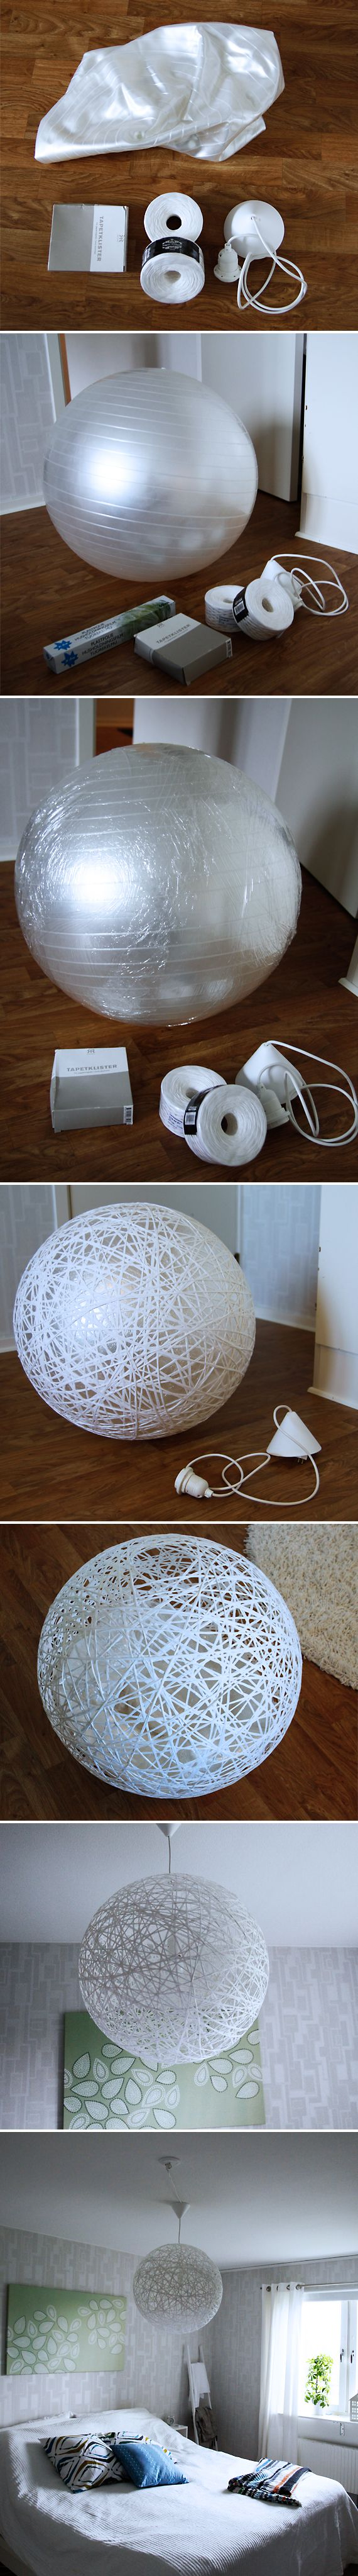 DIY string lamp - I need to make one!